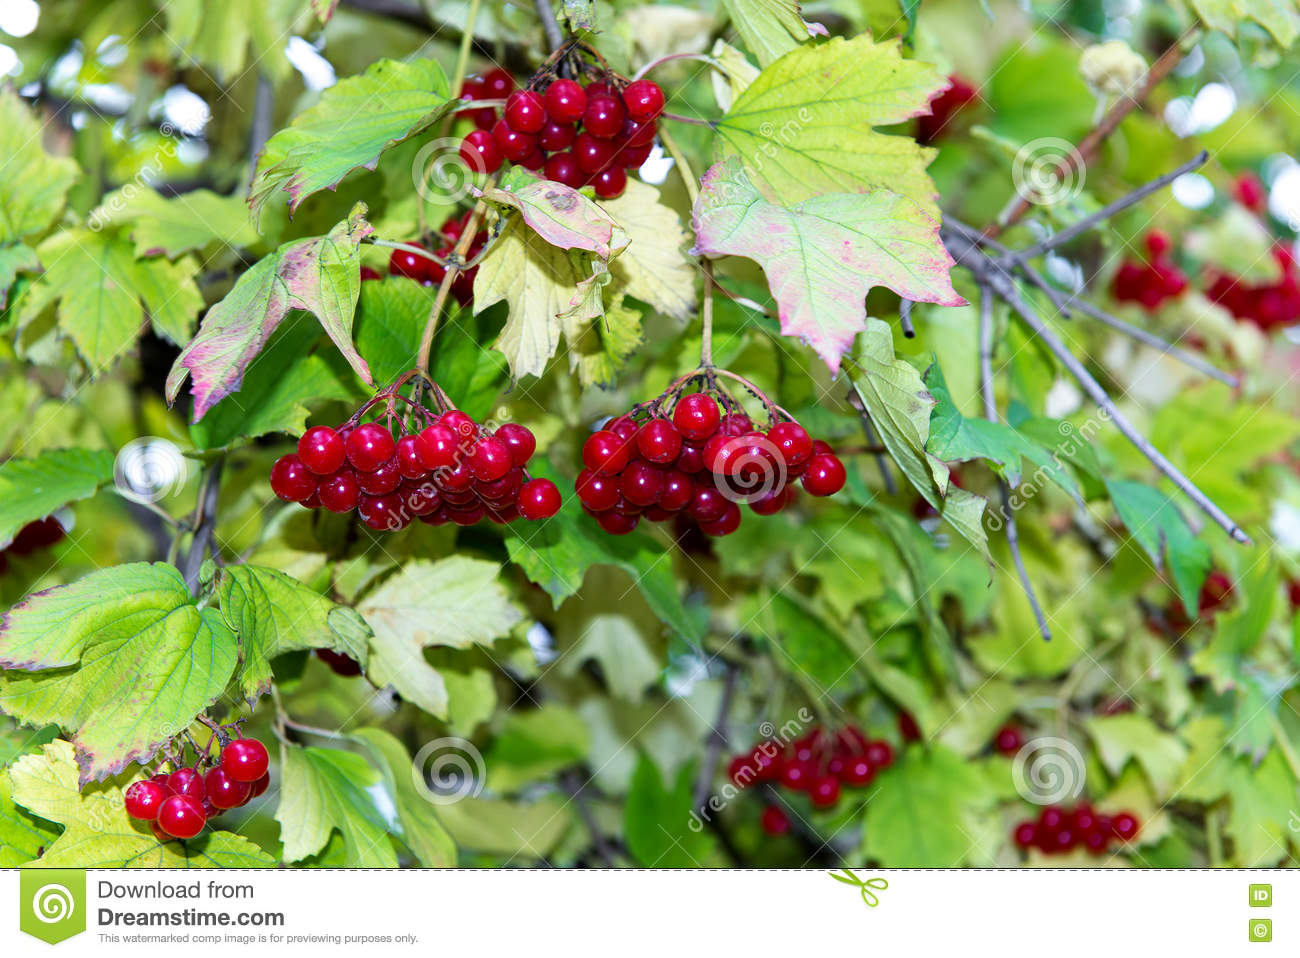 Branch of red viburnum in the garden. Bright red viburnum bunches in the autumn garden. Collection of raspberry harvest.